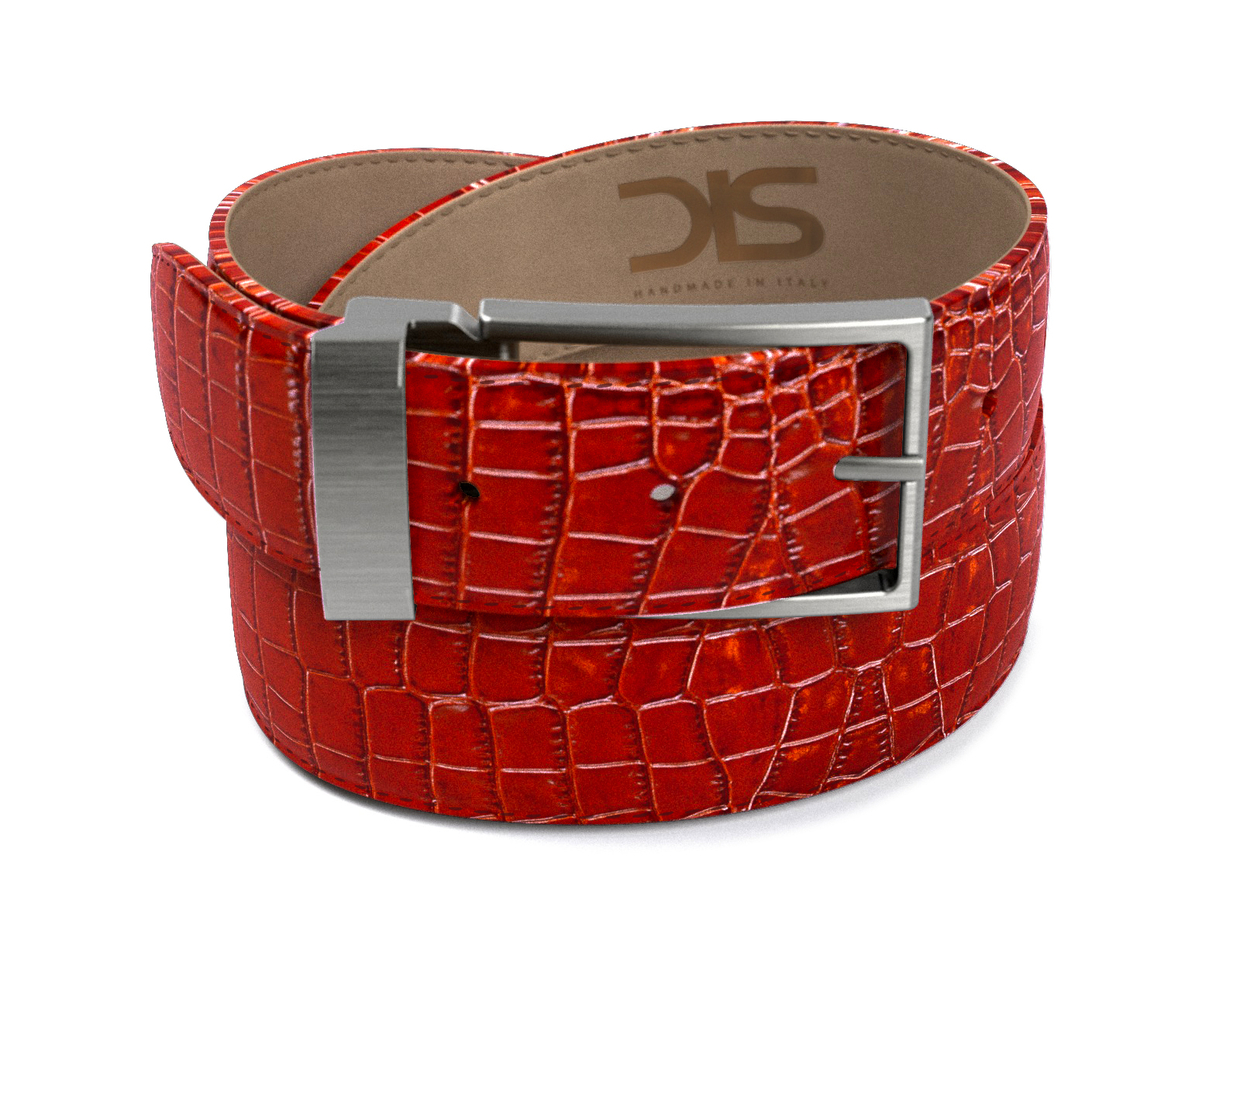 Red crocodile leather belt with opaque buckle